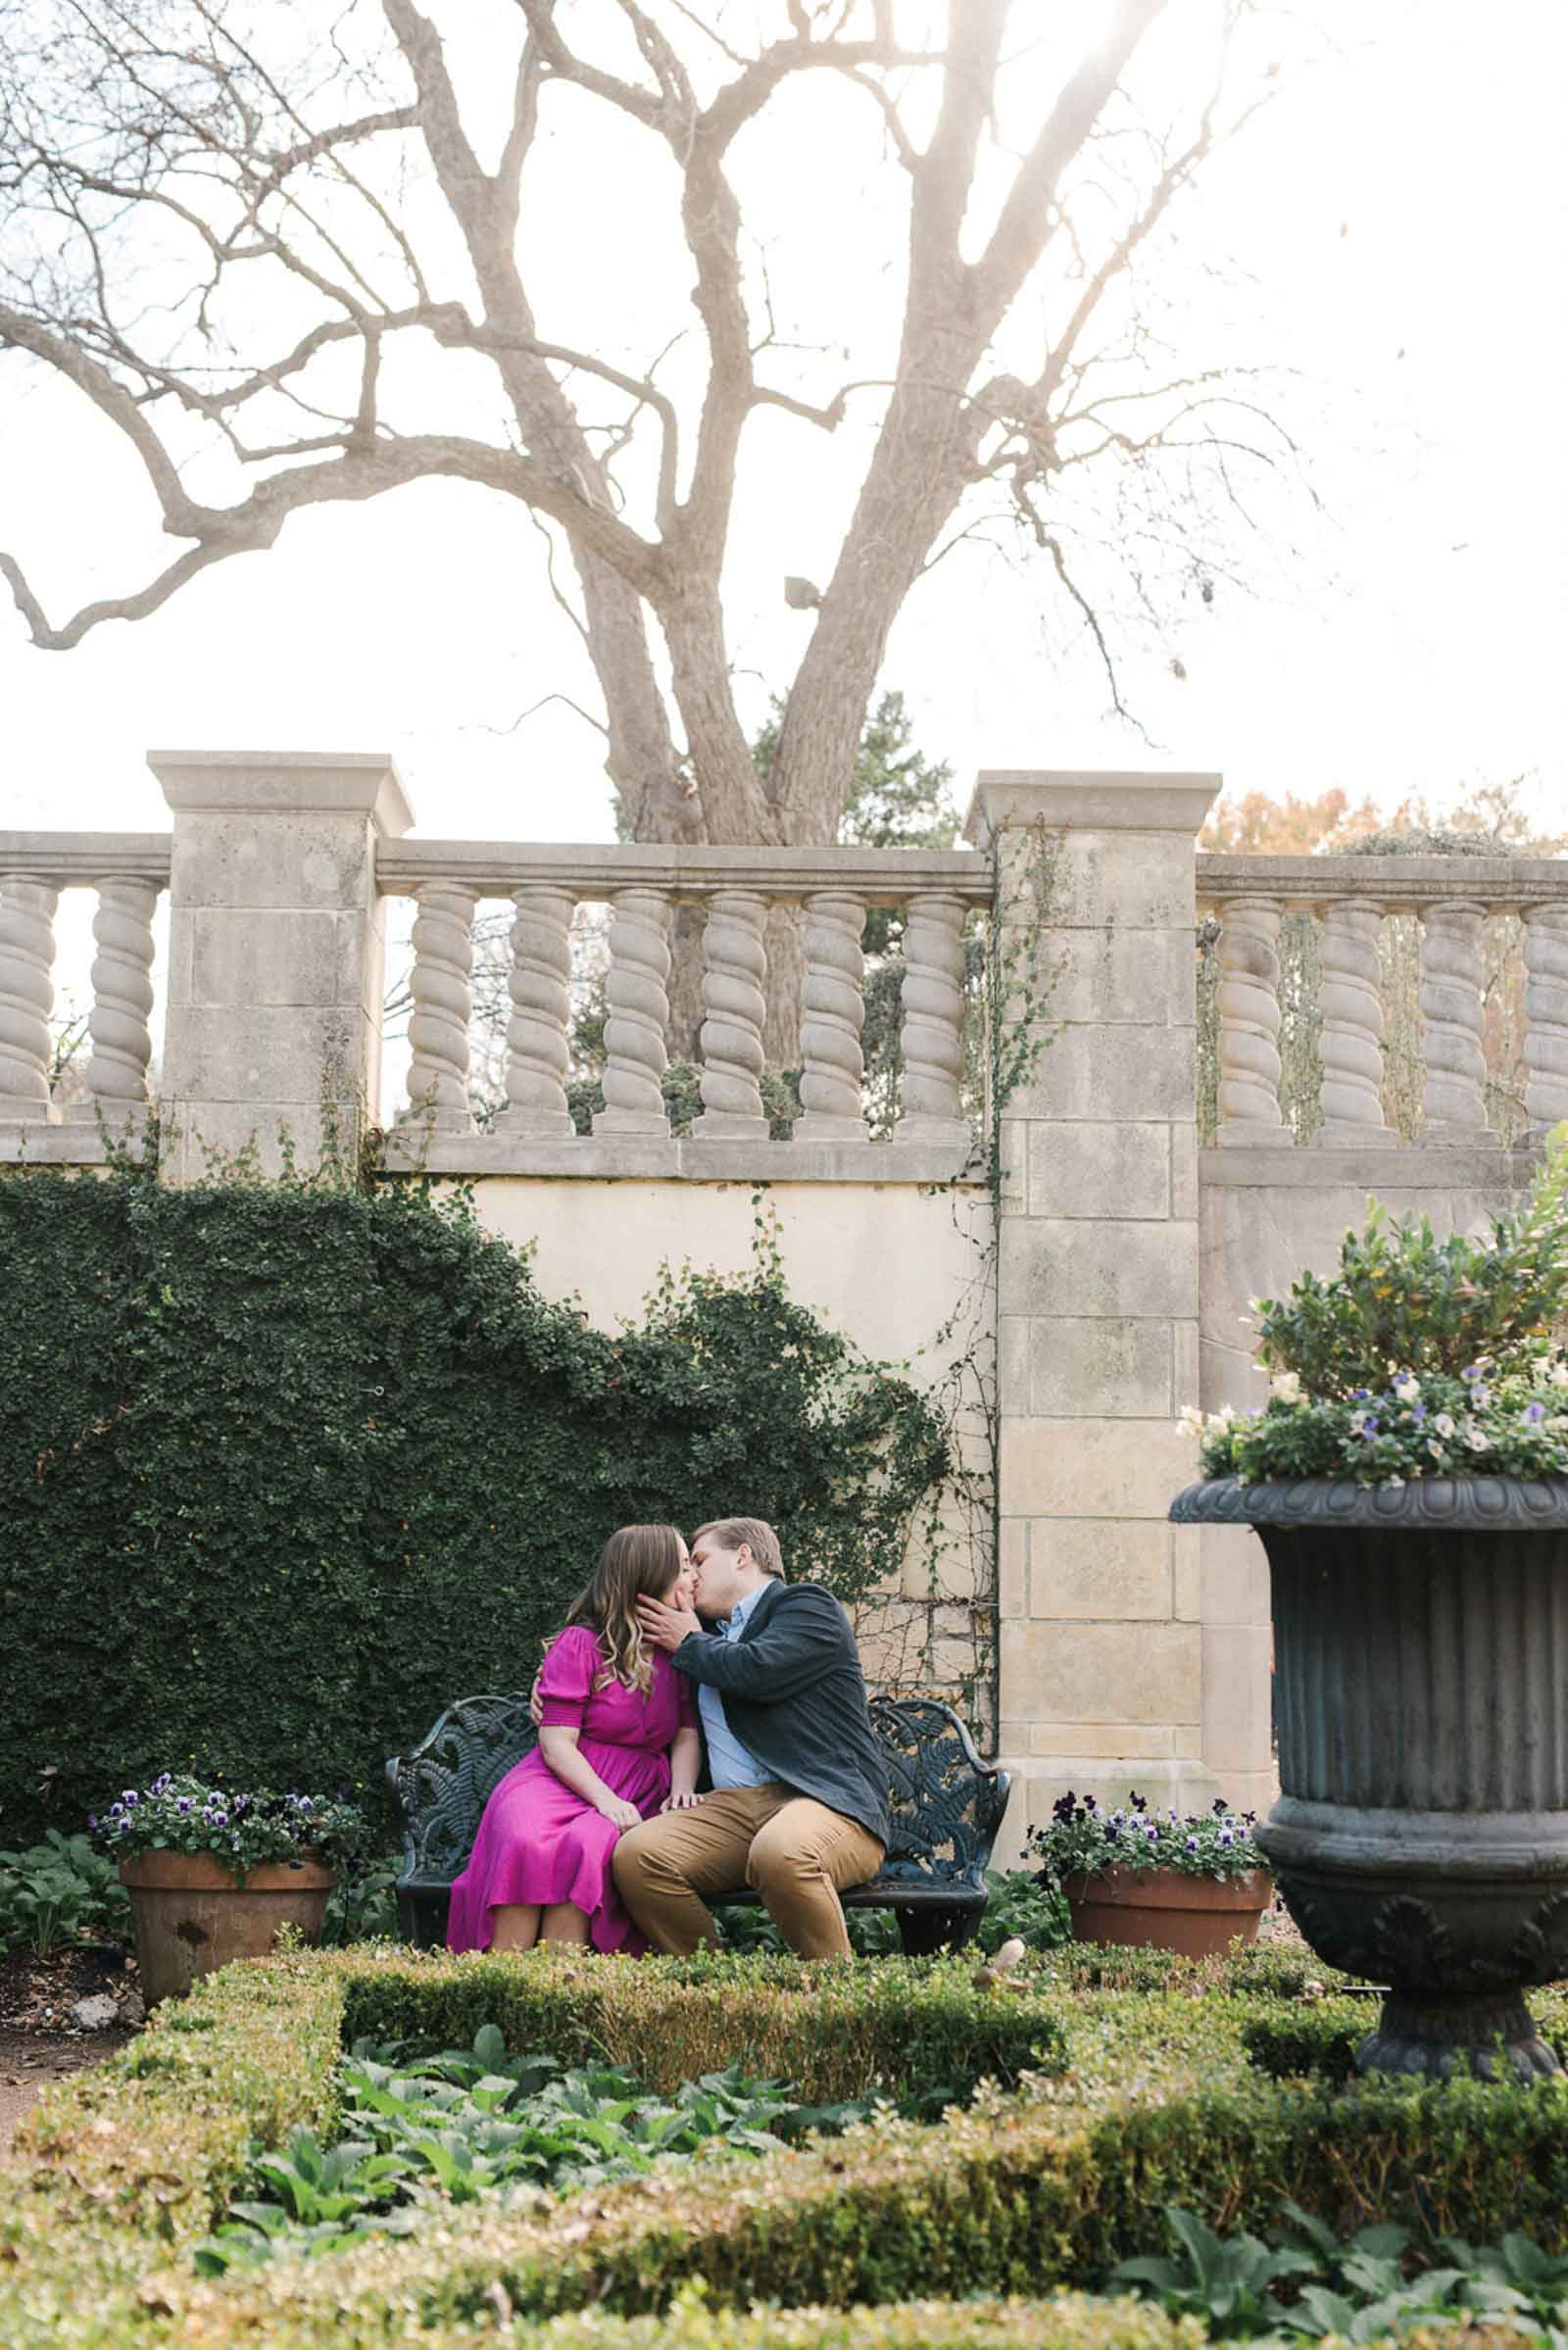 Dallas Arboretum Engagement-JenSymes-35.jpg